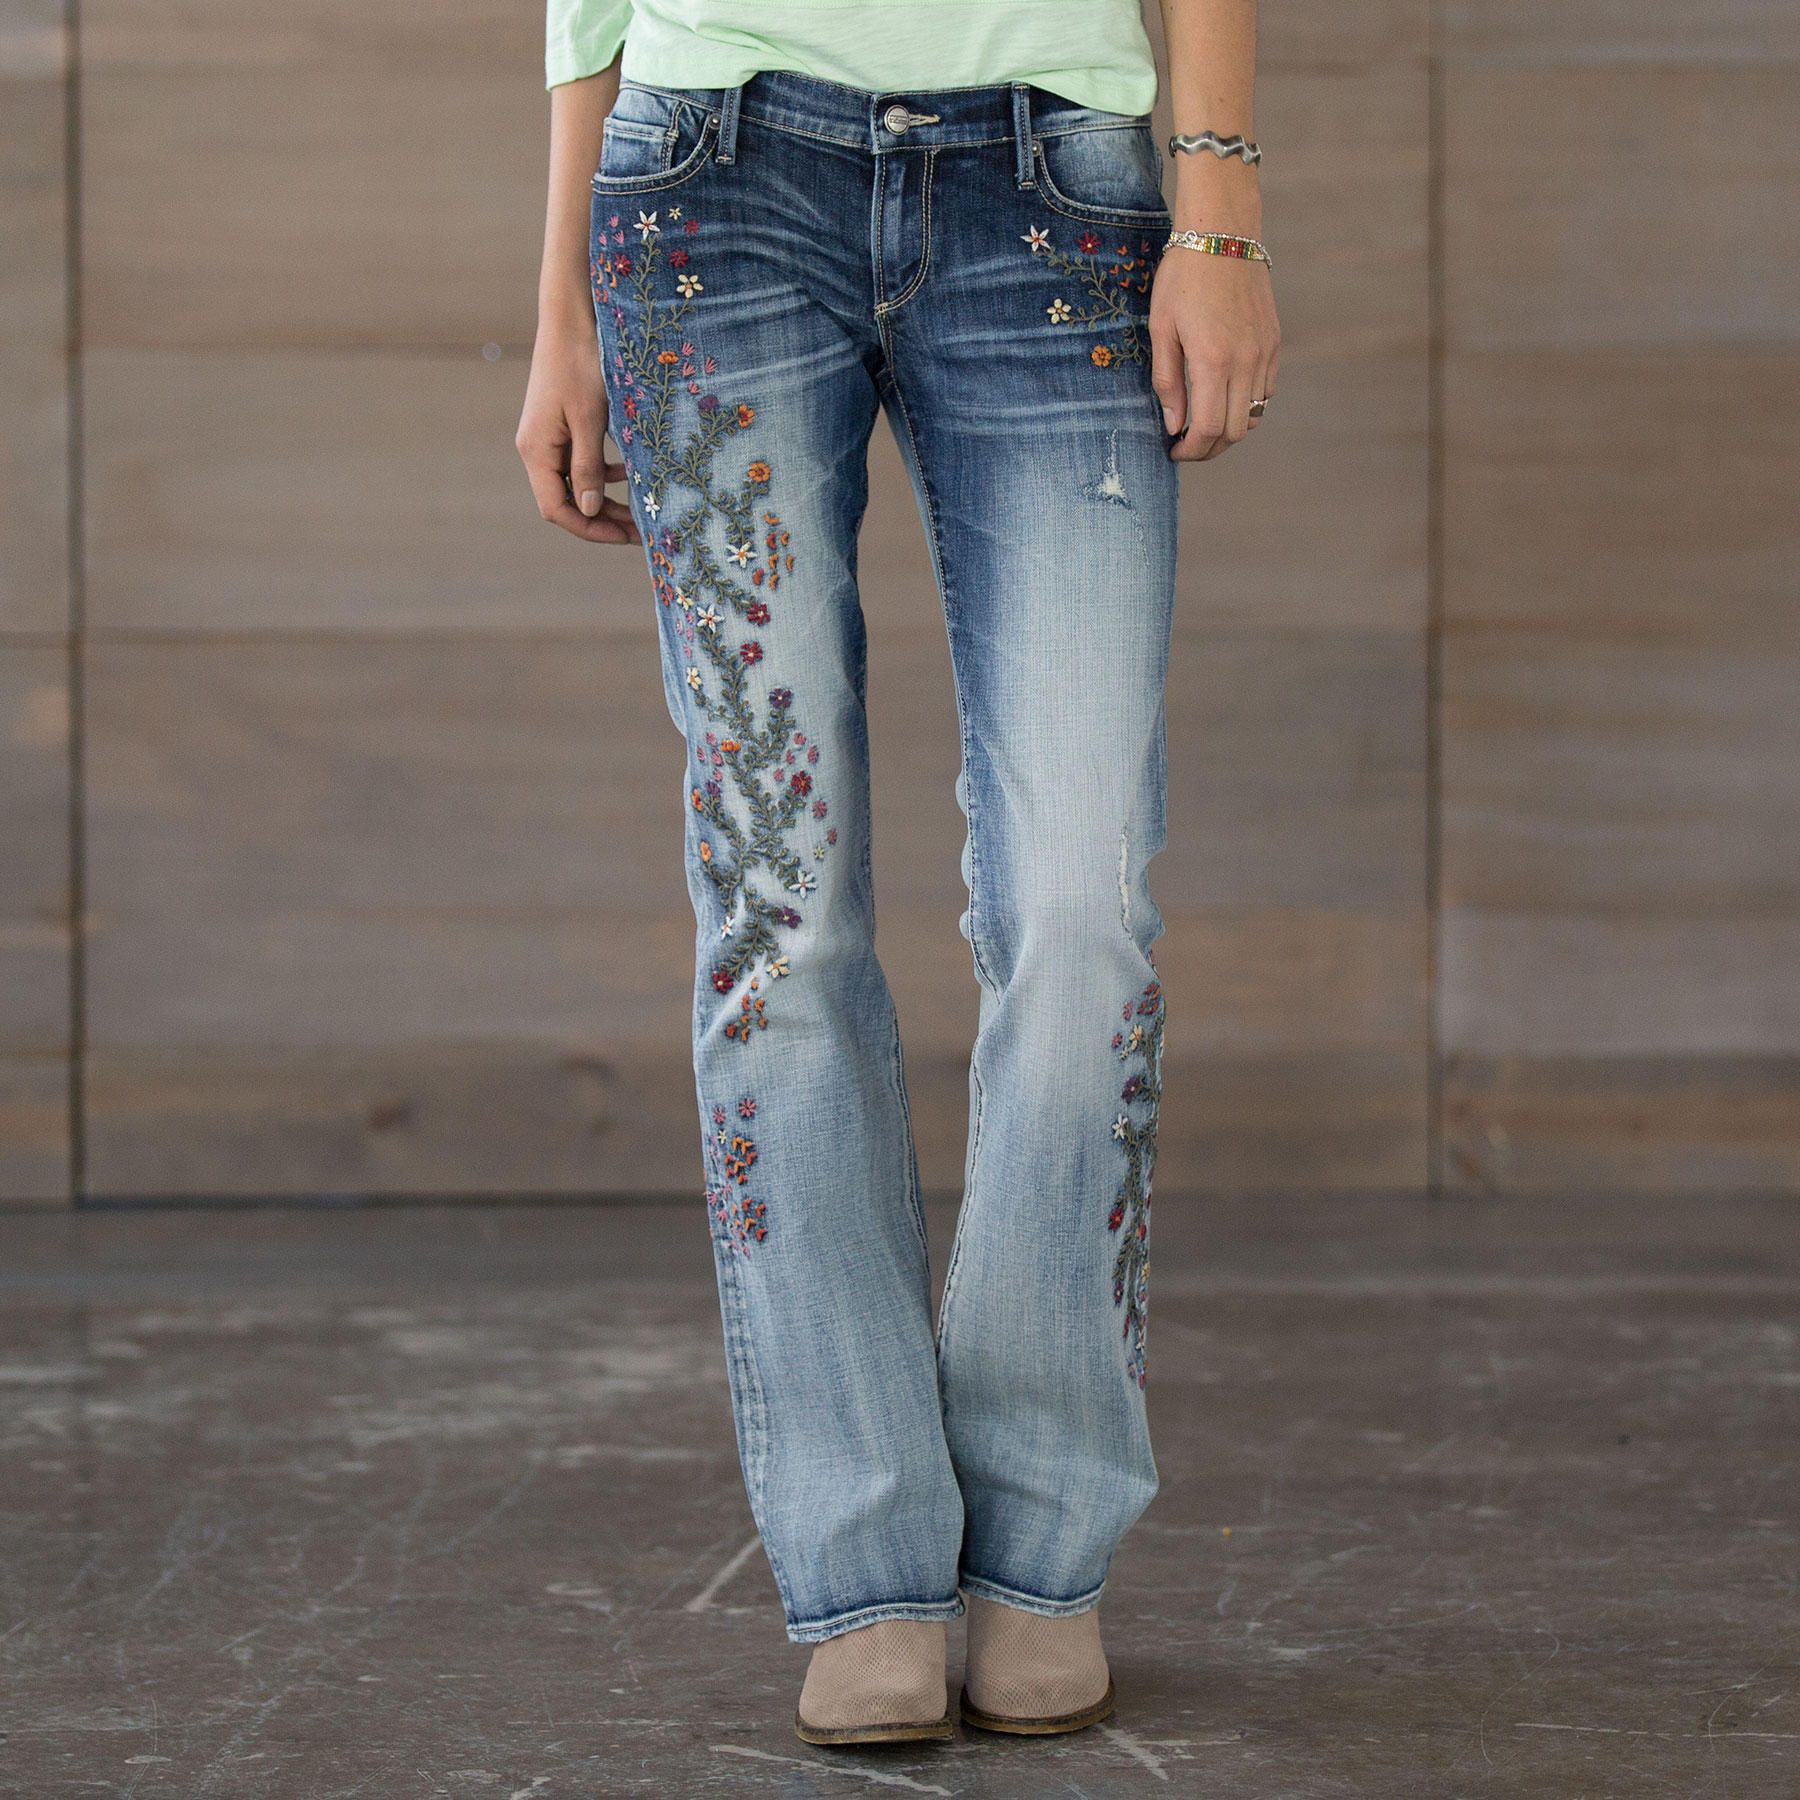 Kelly strawberry blossom jeans meandering floral embroidery kelly strawberry blossom jeans meandering floral embroidery and a hint of figure ccuart Gallery